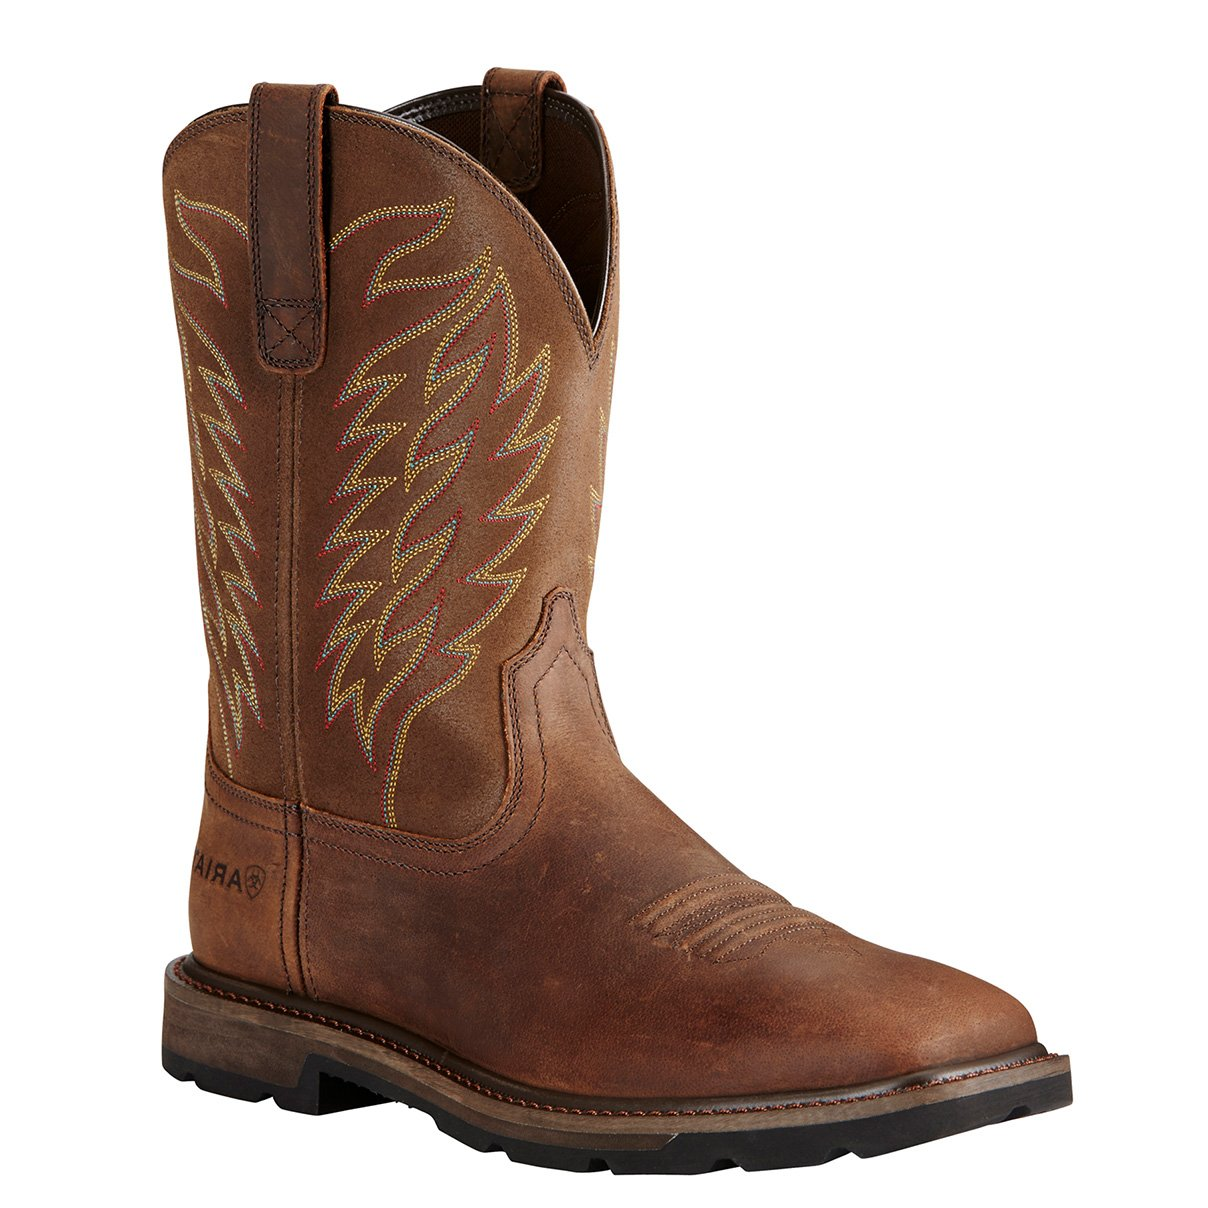 Ariat Mens Groundbreaker Square Toe Work Boots